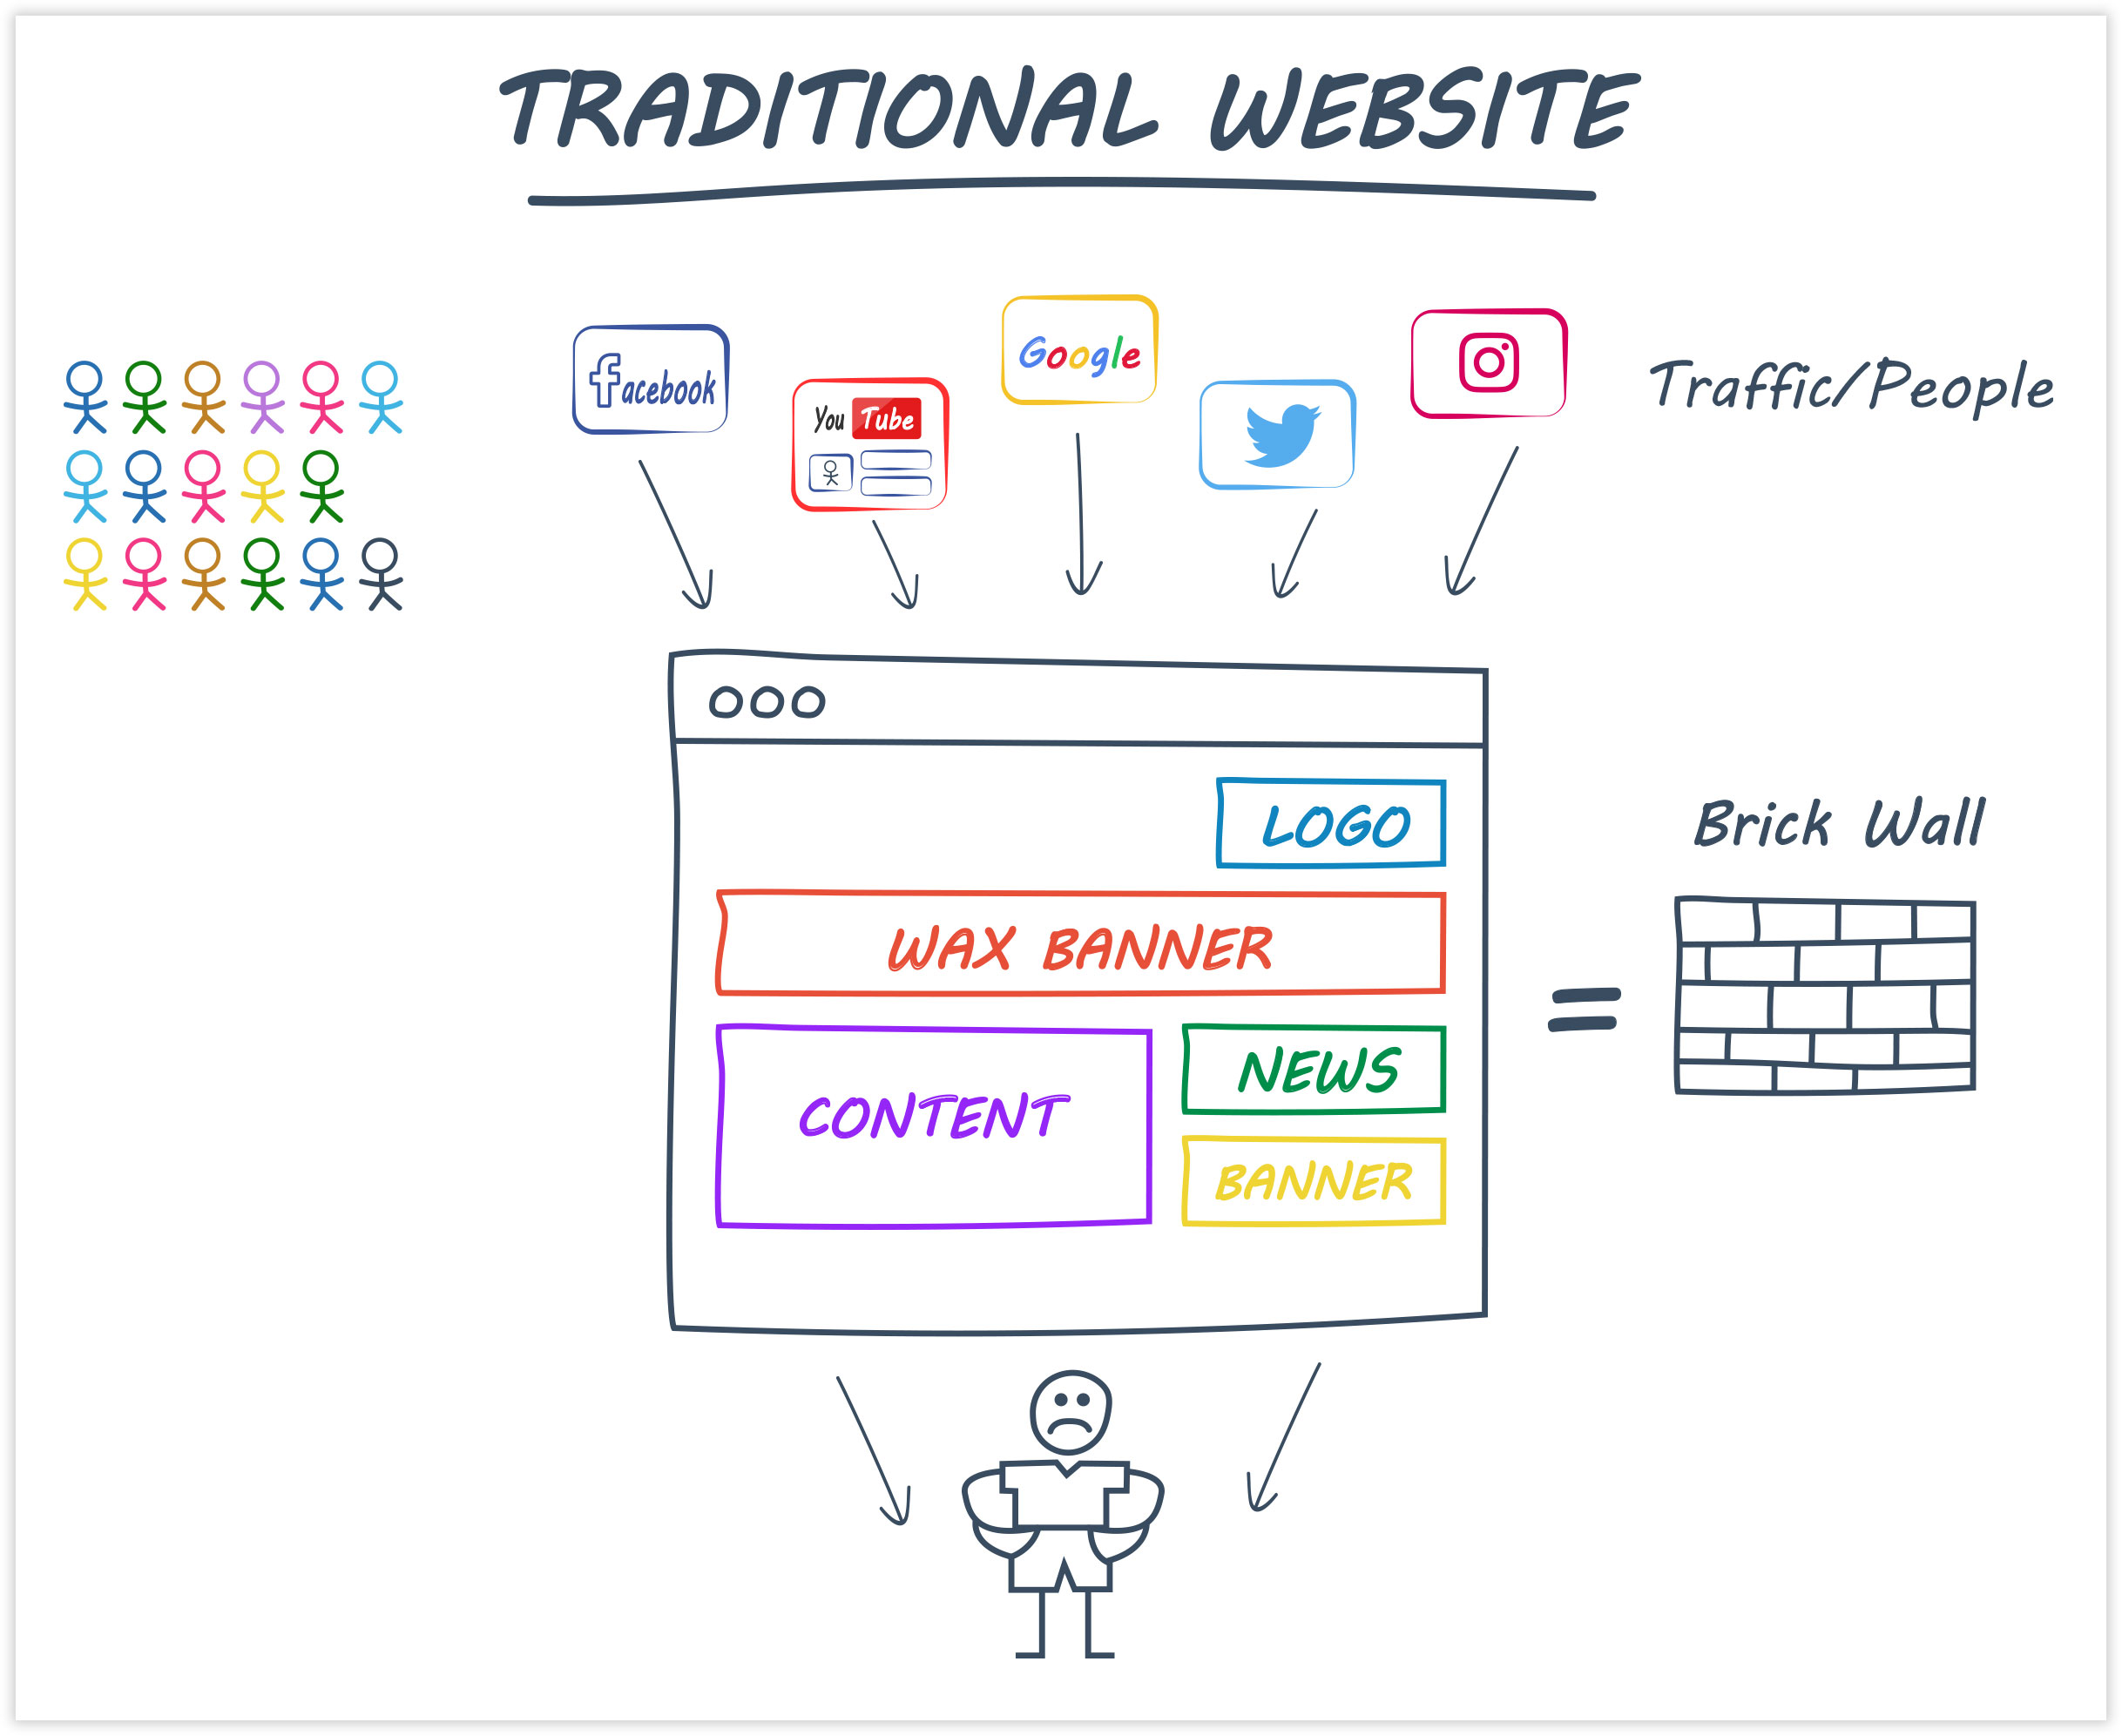 ClickFunnels view on Traditional Websites